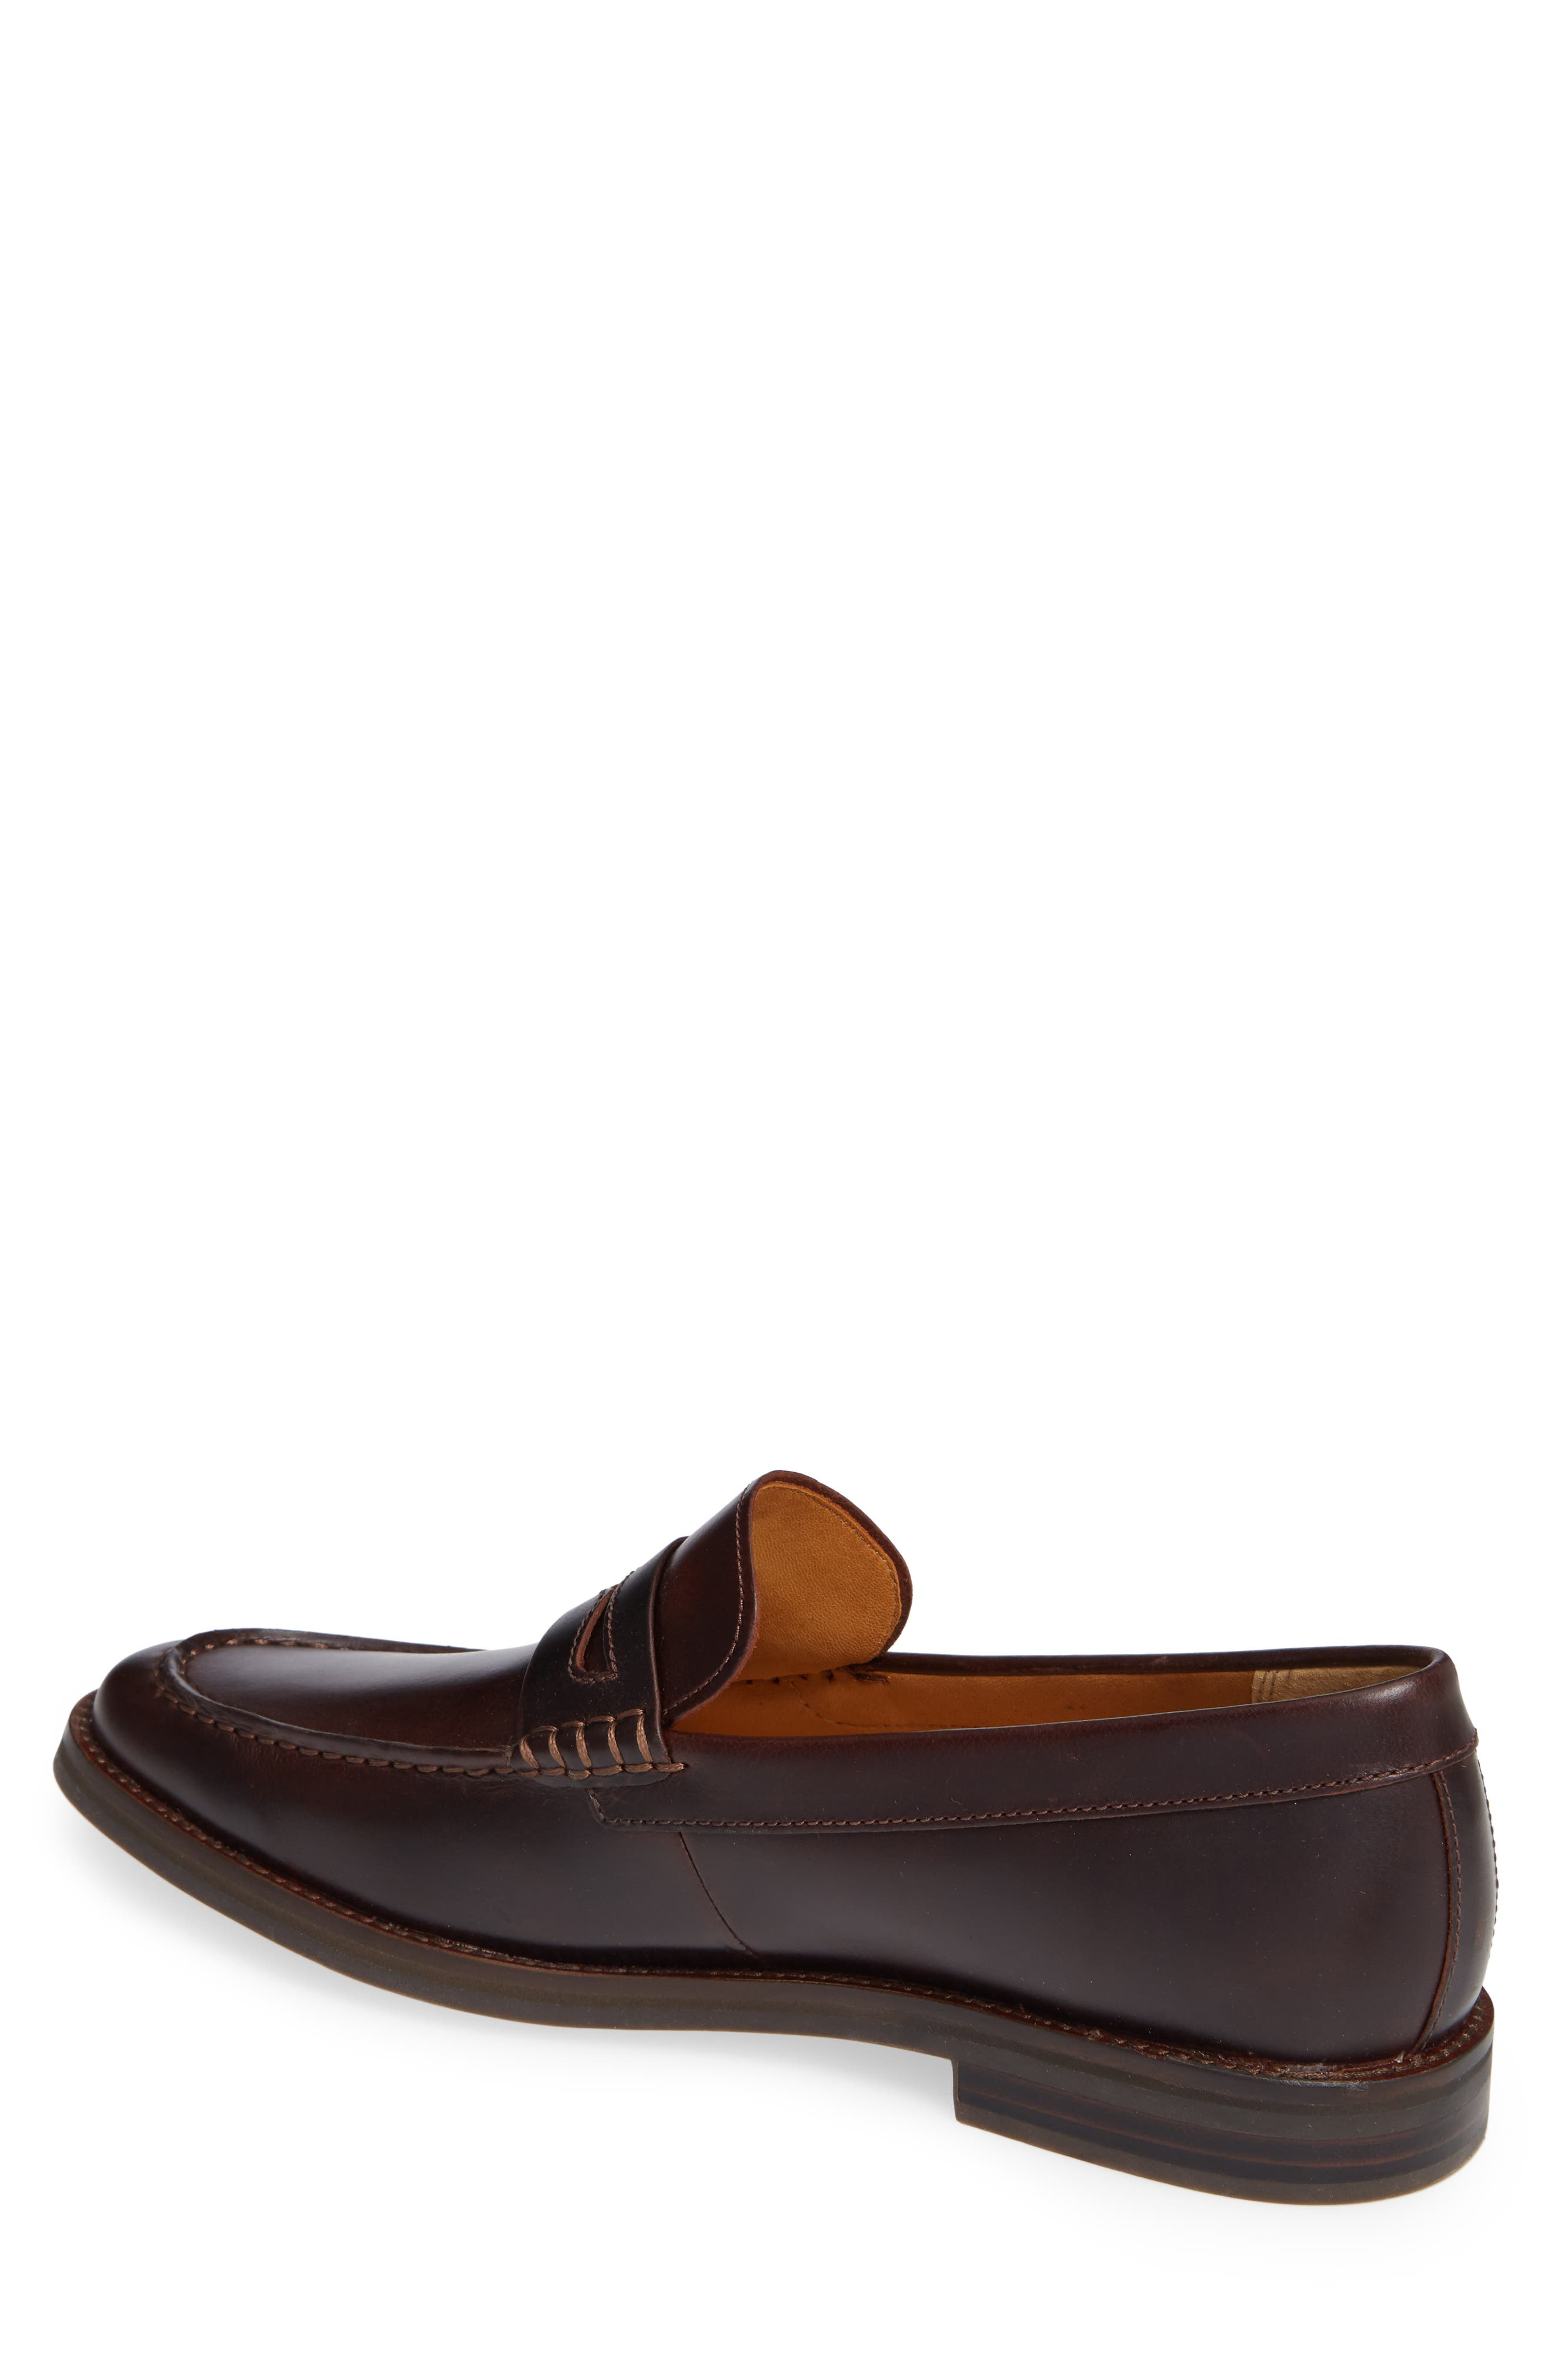 Gold Cup Exeter Penny Loafer,                             Alternate thumbnail 2, color,                             AMARETTO